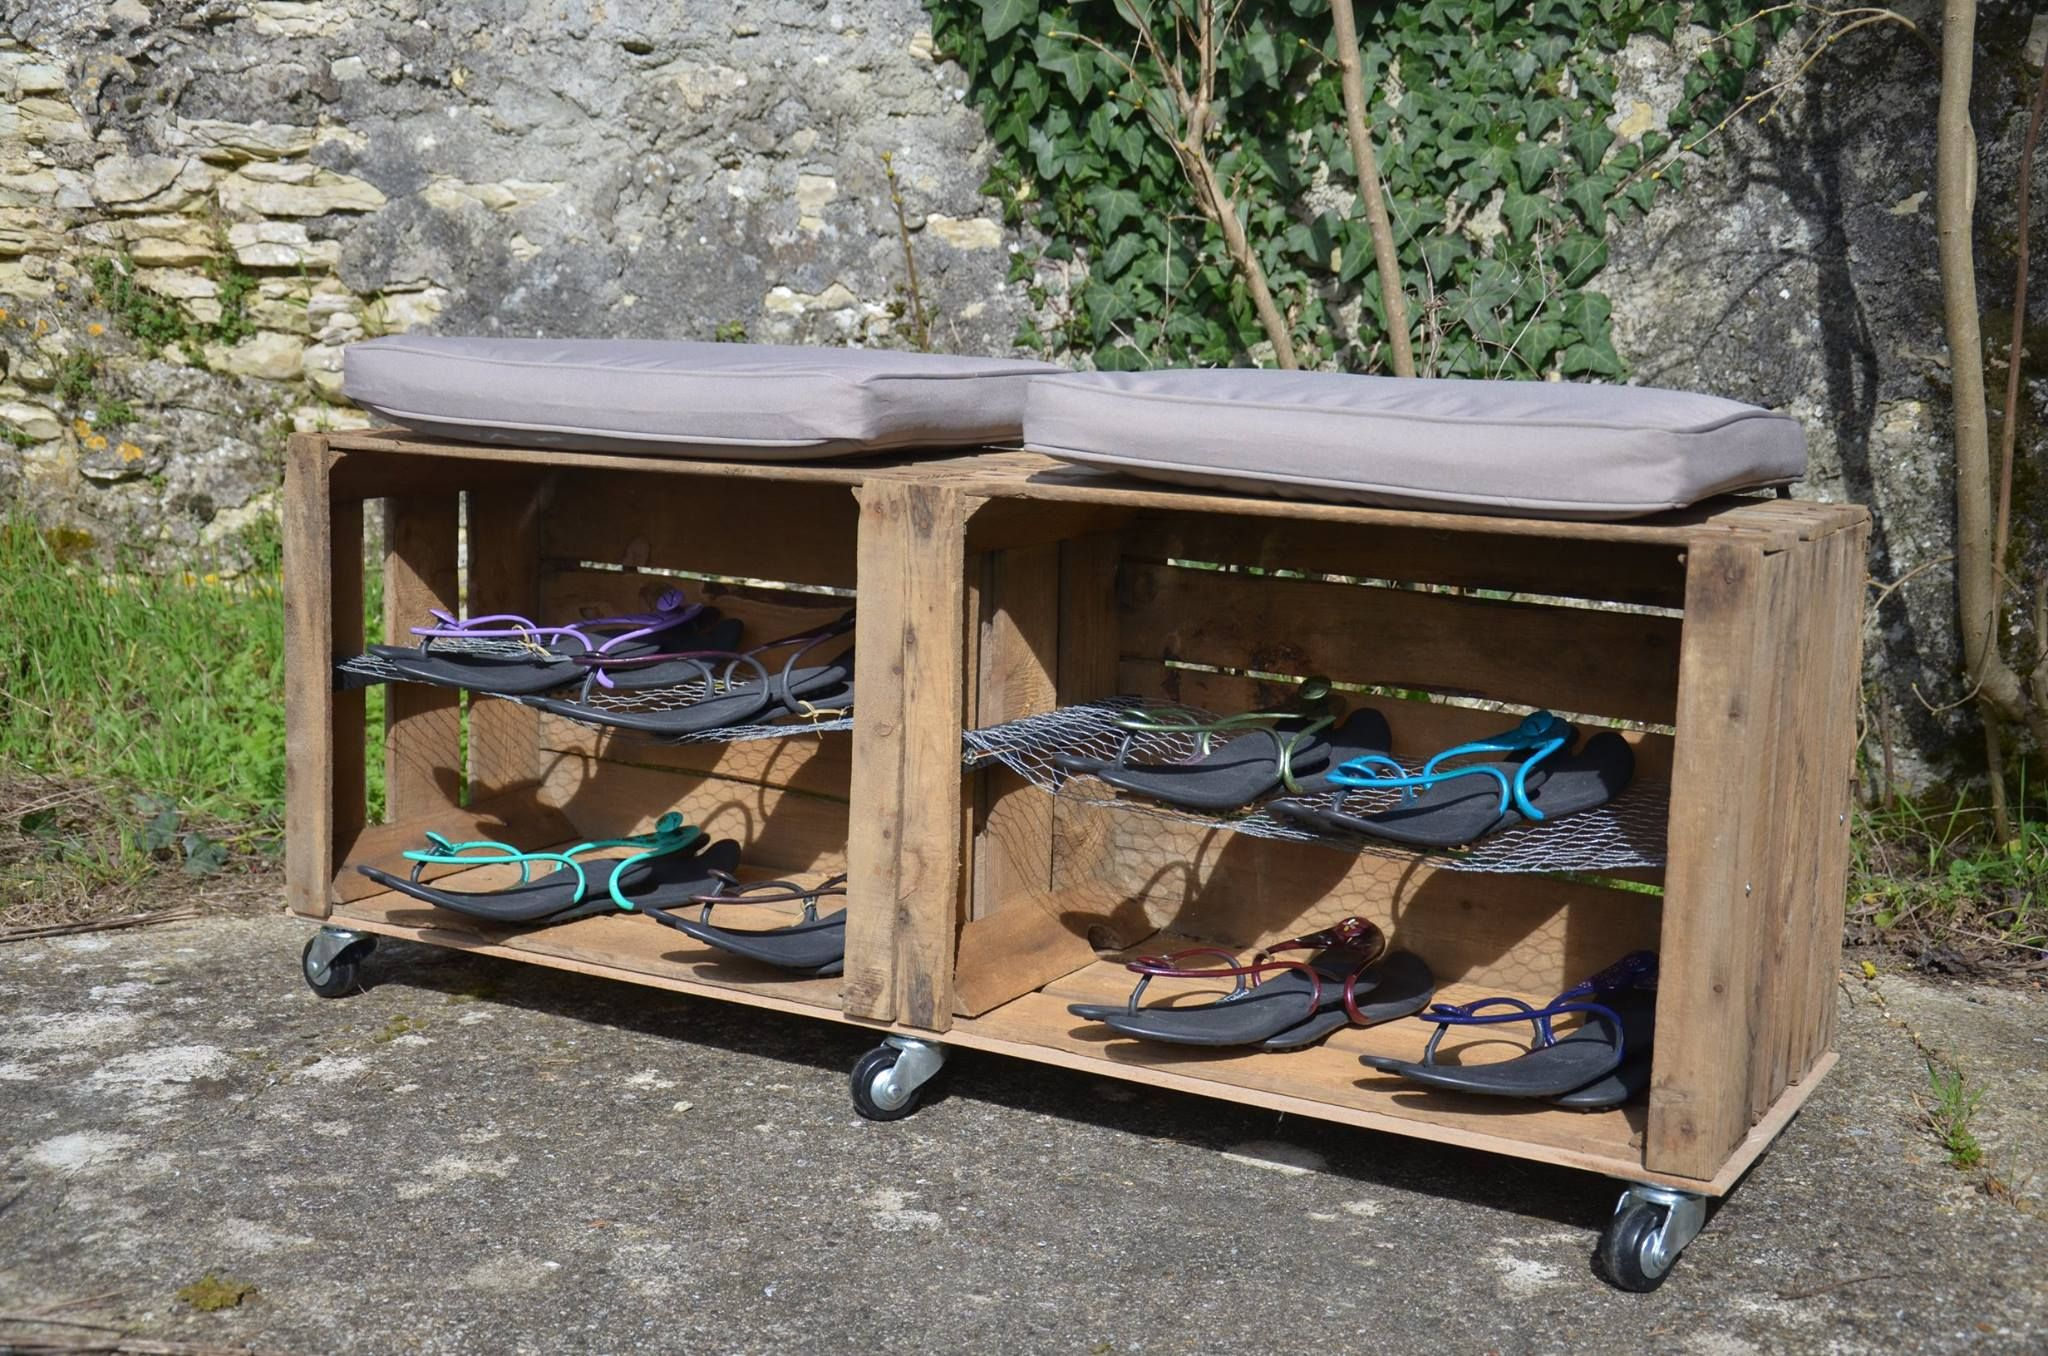 Idee Astuce Roulette Chaussure Coussin Mobile Rangement Meuble Chaussure Meuble Chaussures Palette Rangement Chaussures